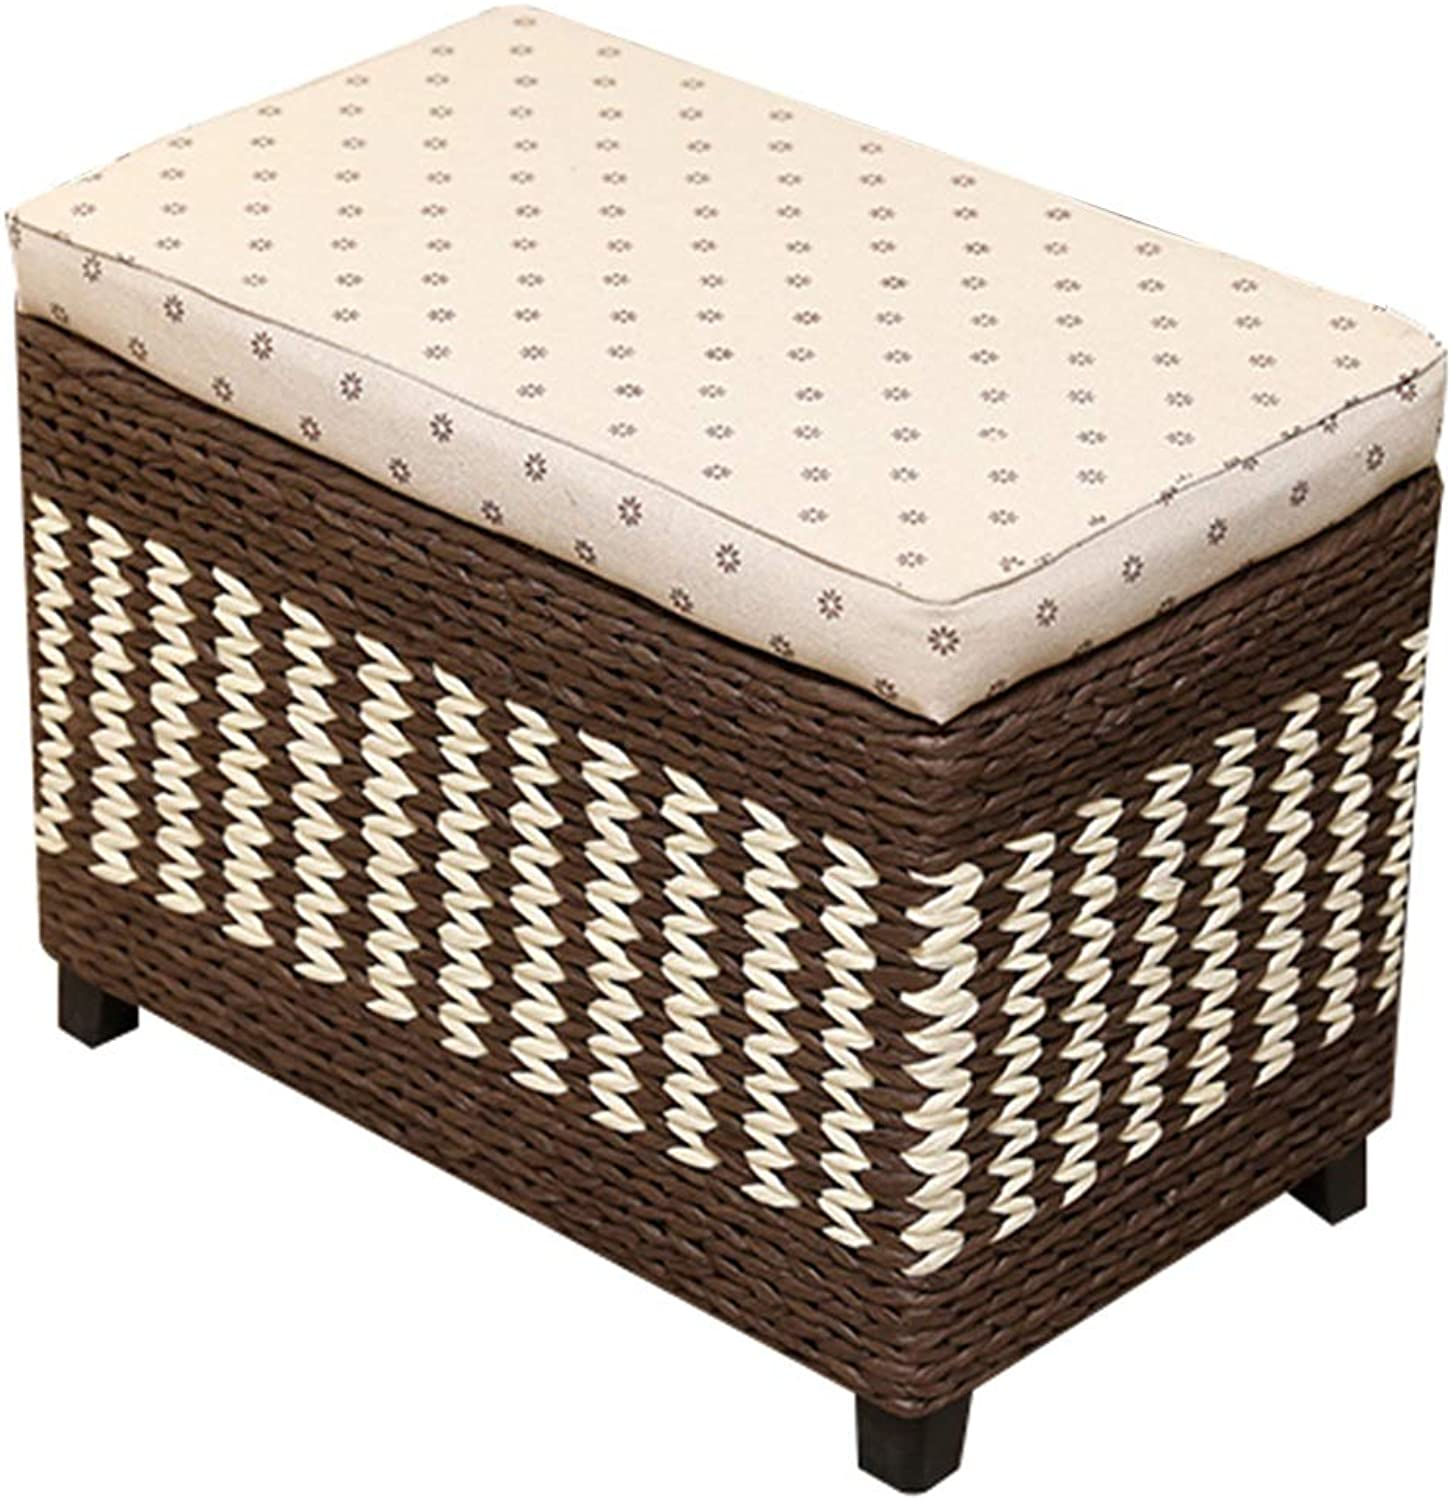 CAIJUN Footstool Storage Weaving Solid Wood Frame Multifunction Indoor Portable Festival Gift, 3 colors, 5 Sizes (color   Brown, Size   50x30x30cm)